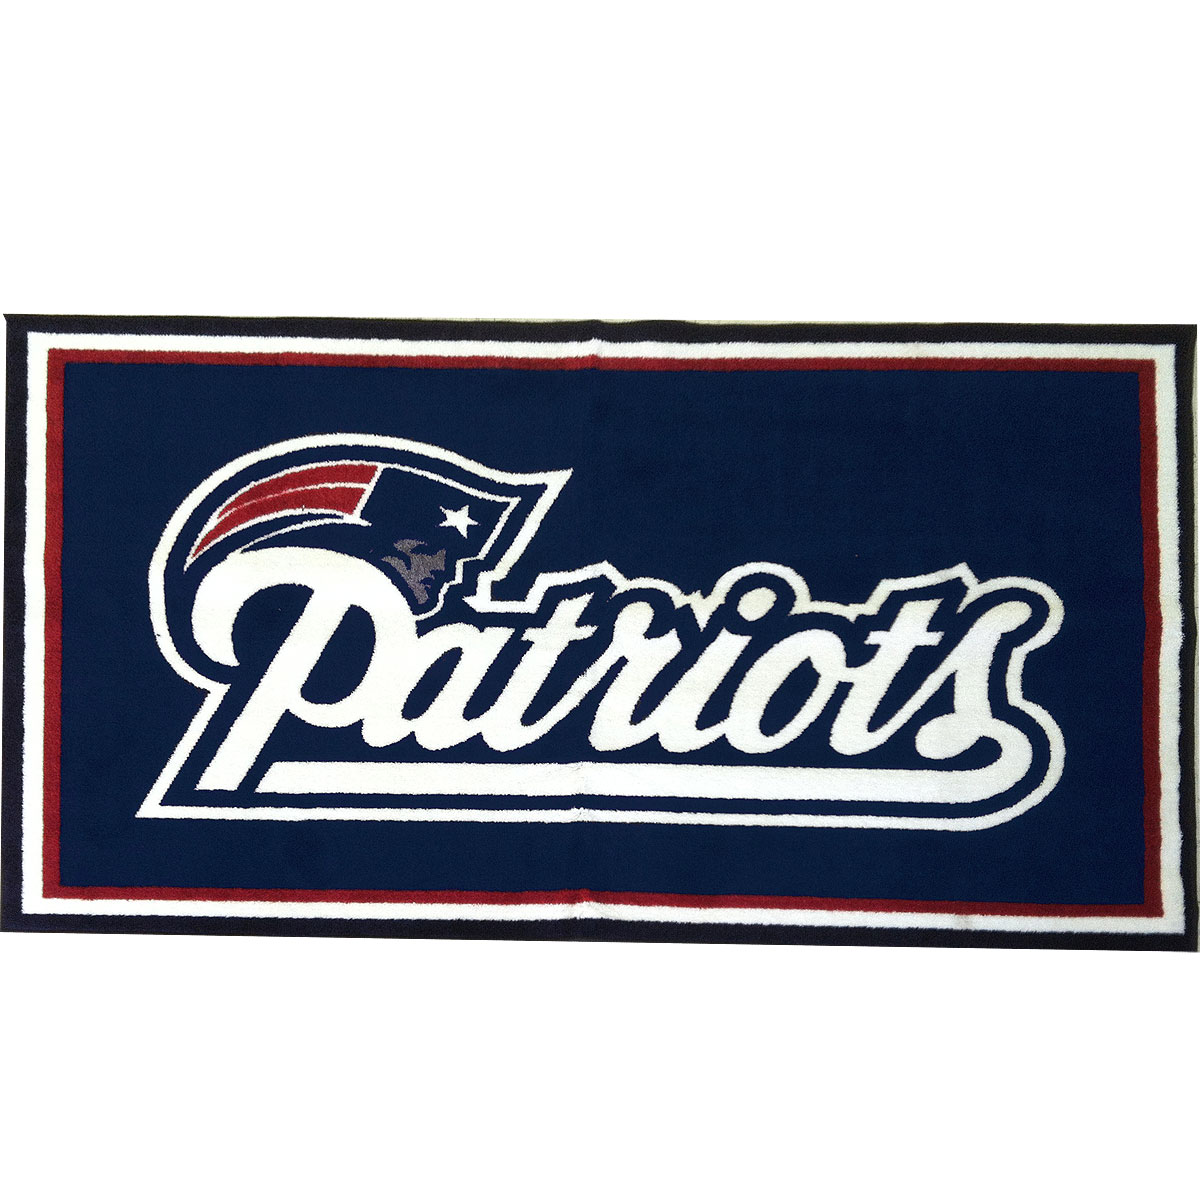 Make A Lasting Impression On Your Guests With Large Area Rug Adorning Favorite Football